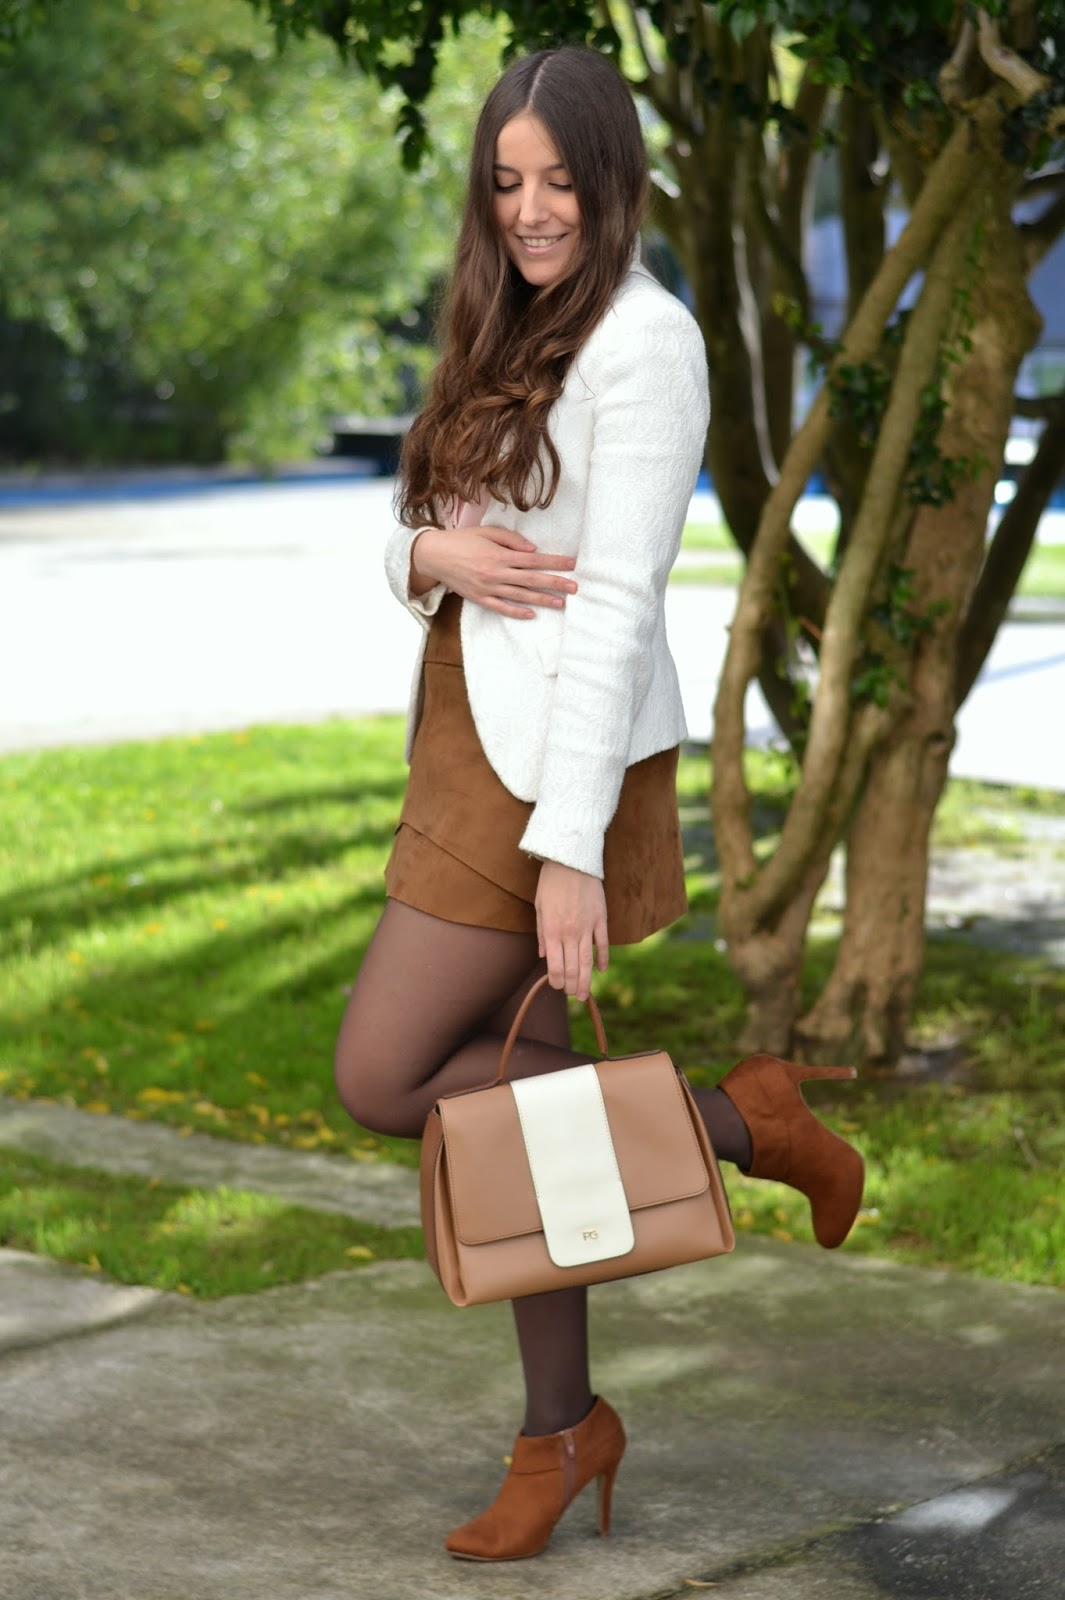 ankle boots, botines, booties, heels, deichmann, camel